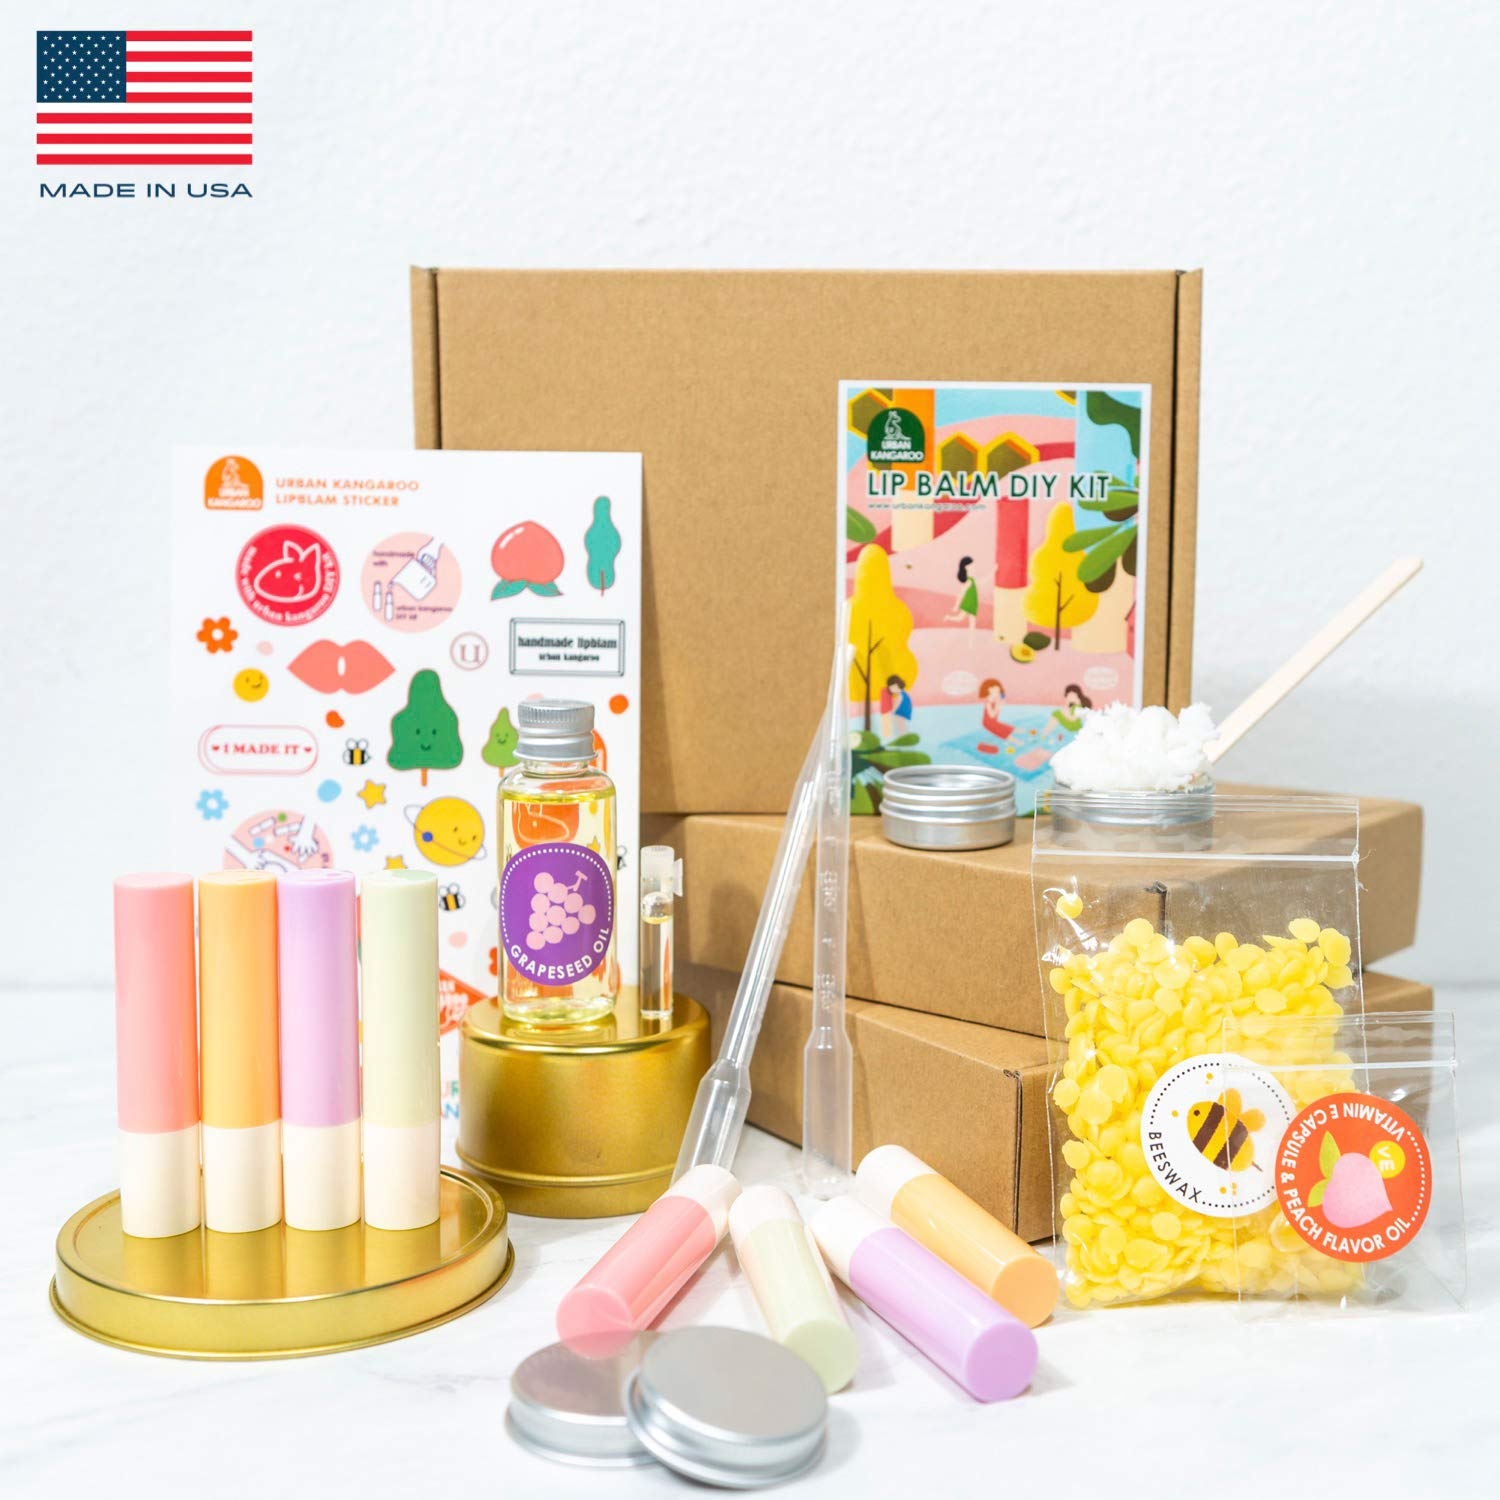 DIY Shea Butter Lip Balm Making Kit, Creates 10 Luxurious Lip Balms with EVERYTHING You Need